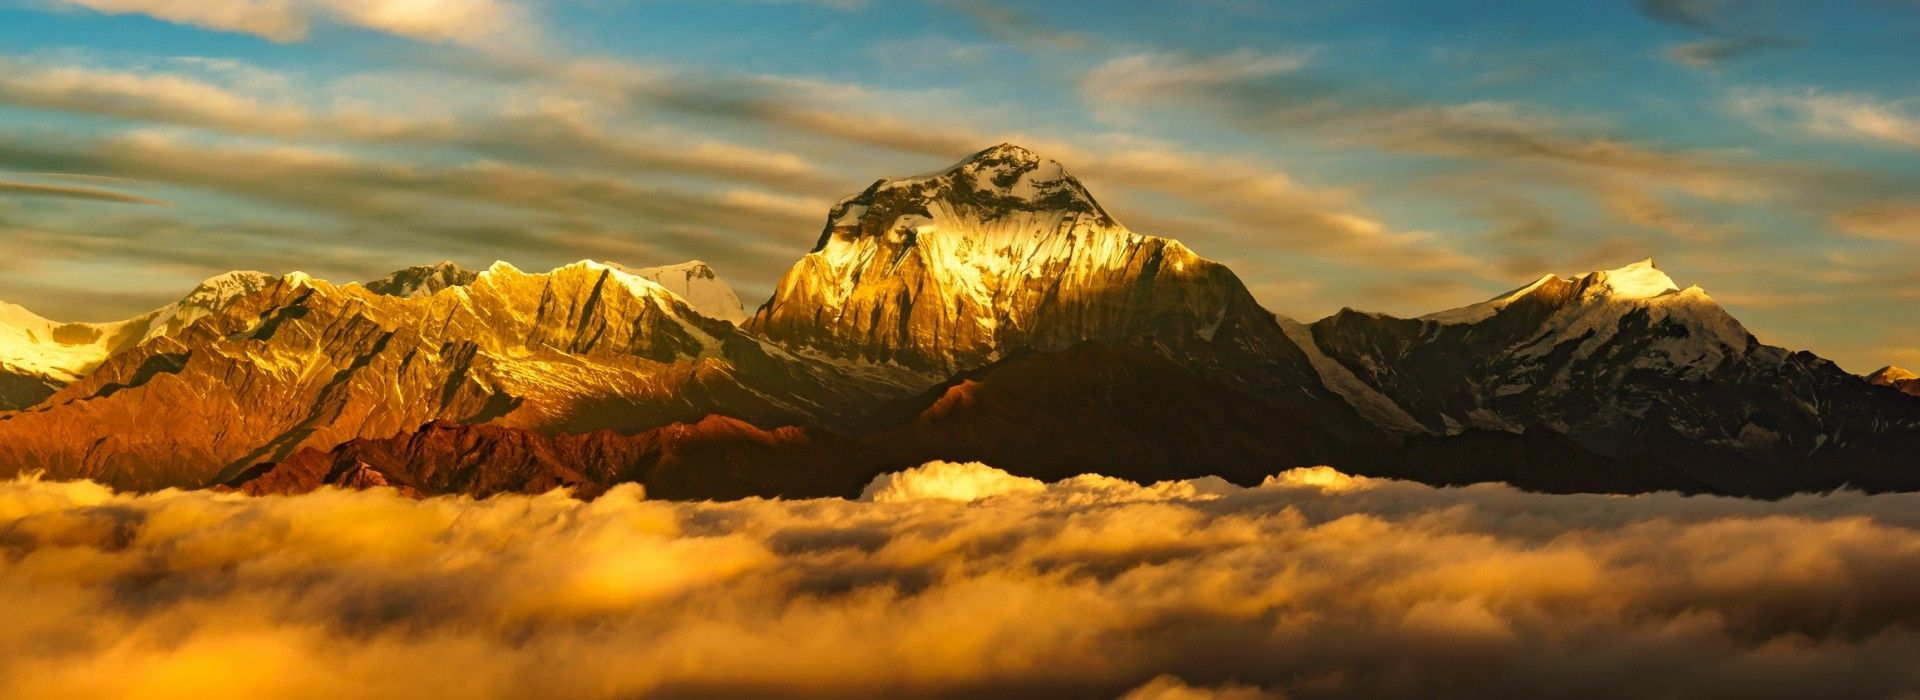 View of Mount Dhaulagiri at Sunrise from Poonhill